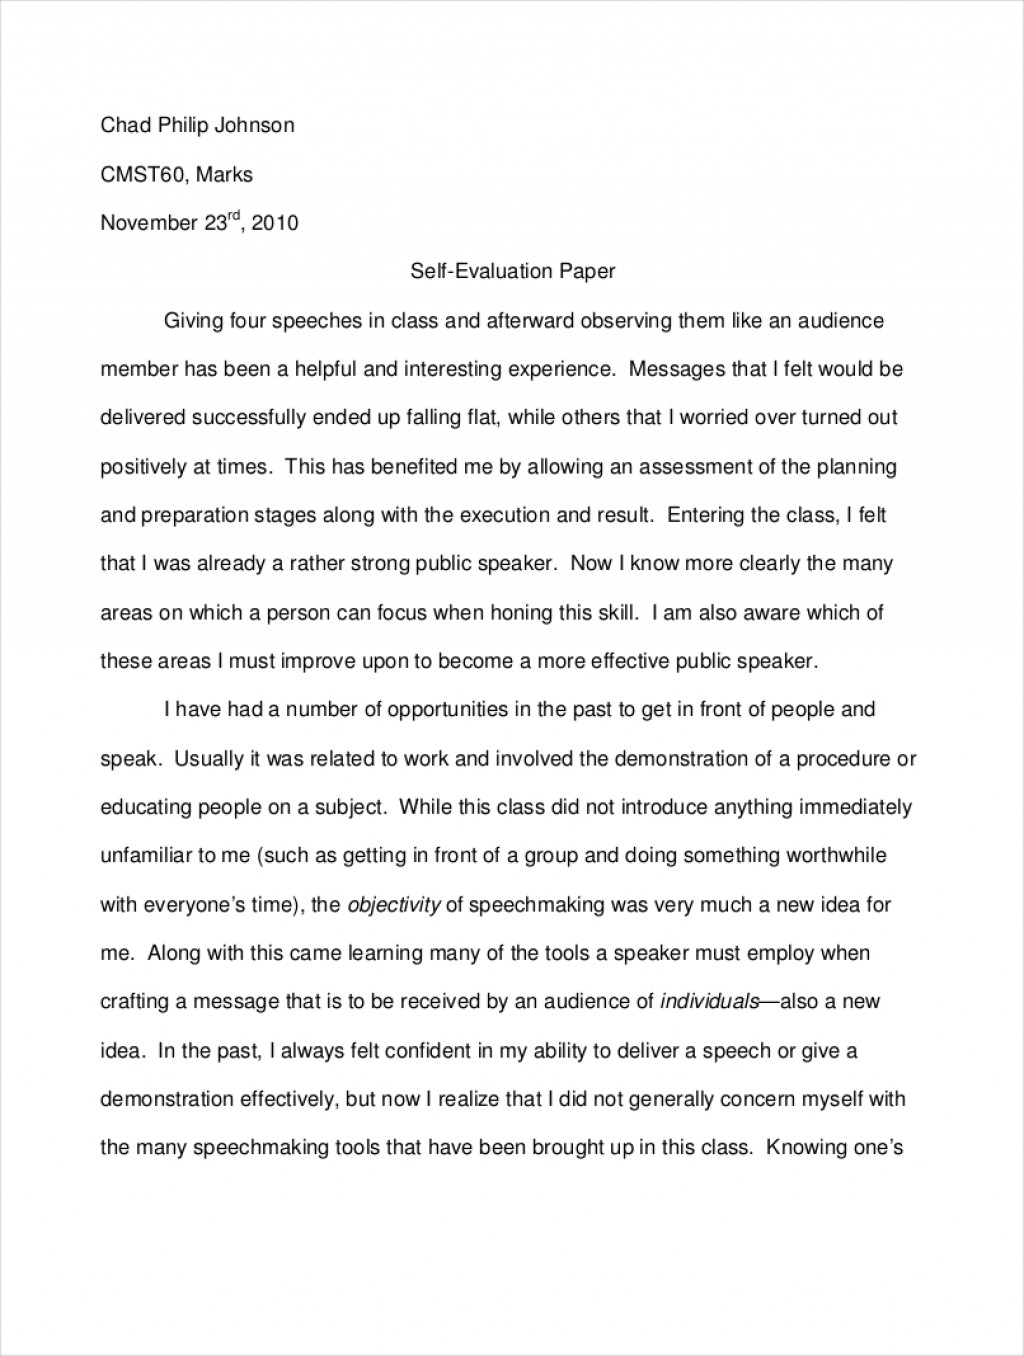 002 Evaluation Essay Topics Example Ideas Of Examples Awful Questions With Criteria Large